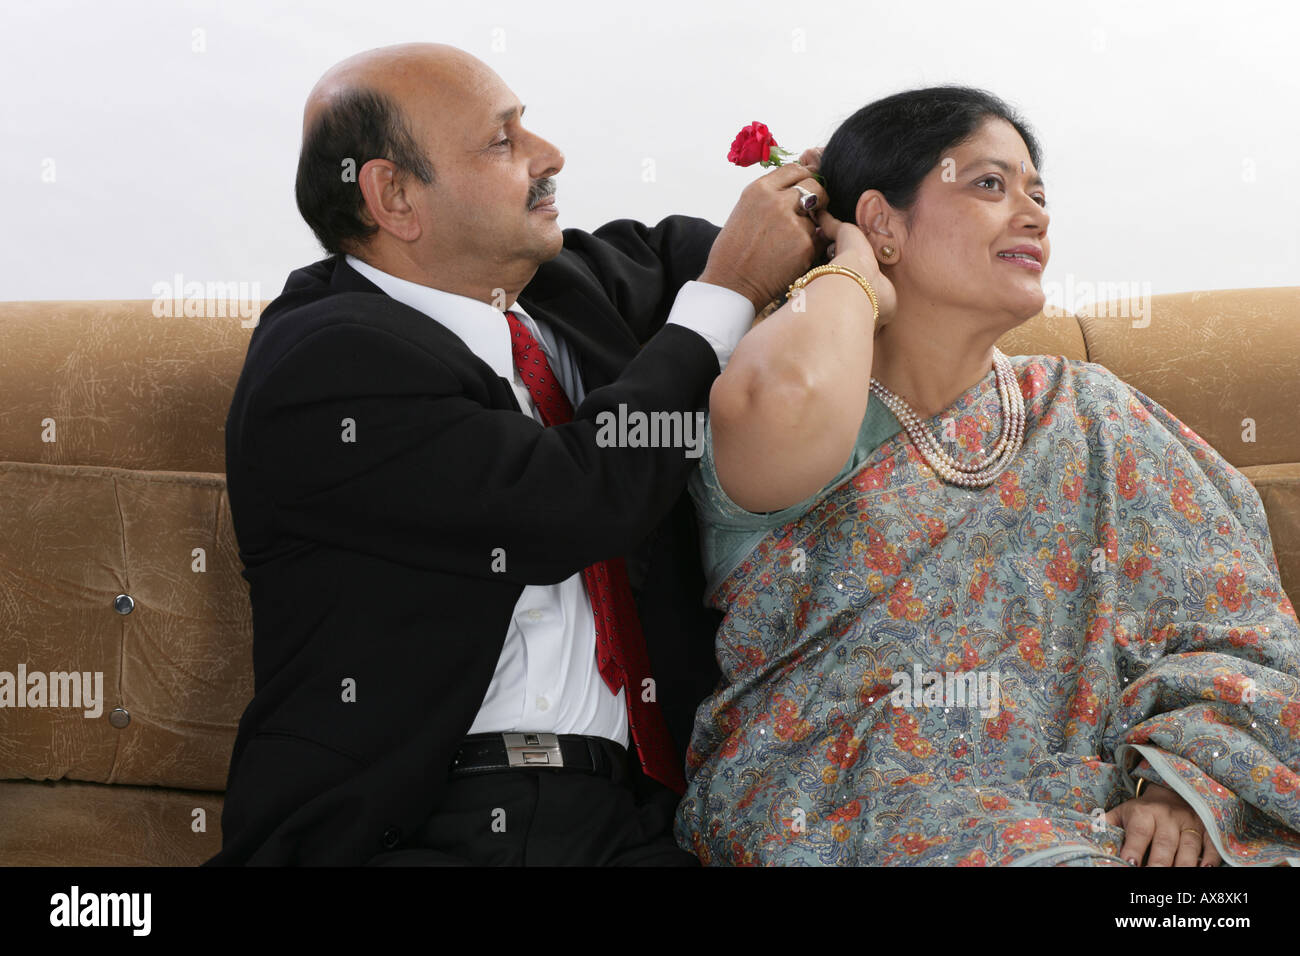 Senior man tucking rose in the hair of his wife - Stock Image